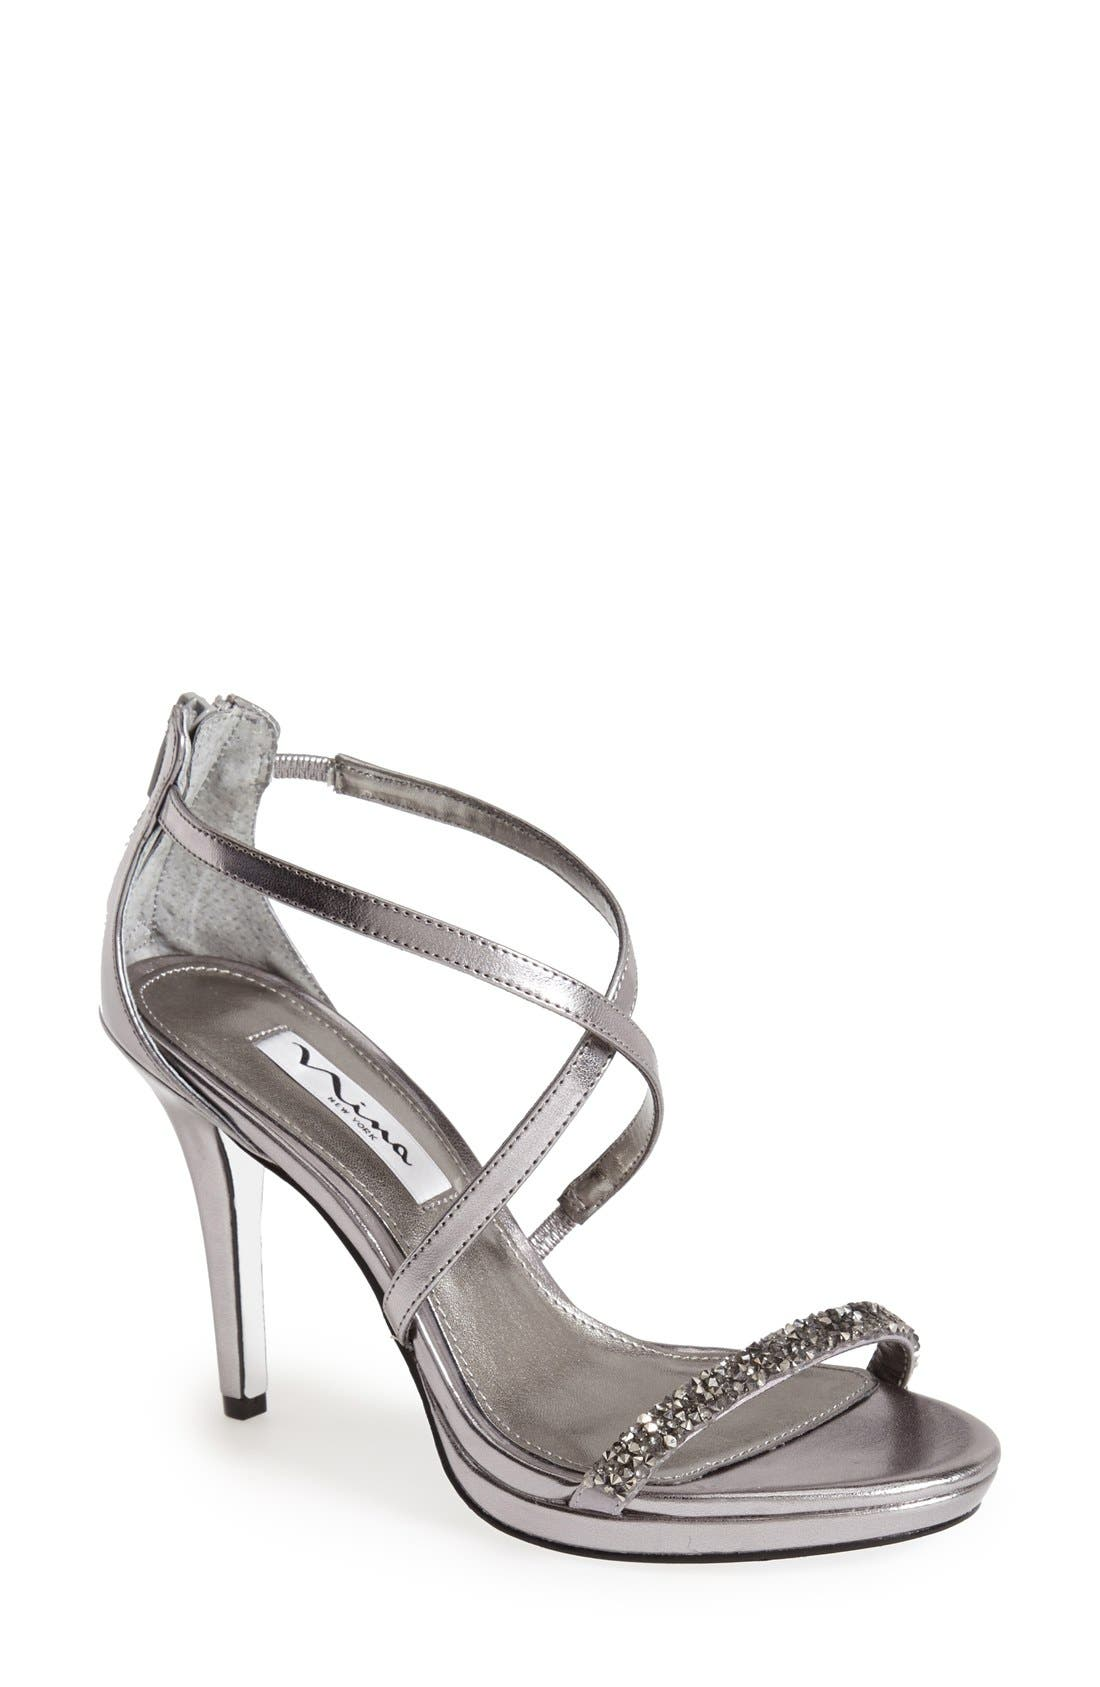 Alternate Image 1 Selected - Nina 'Robyn' Sandal (Women)